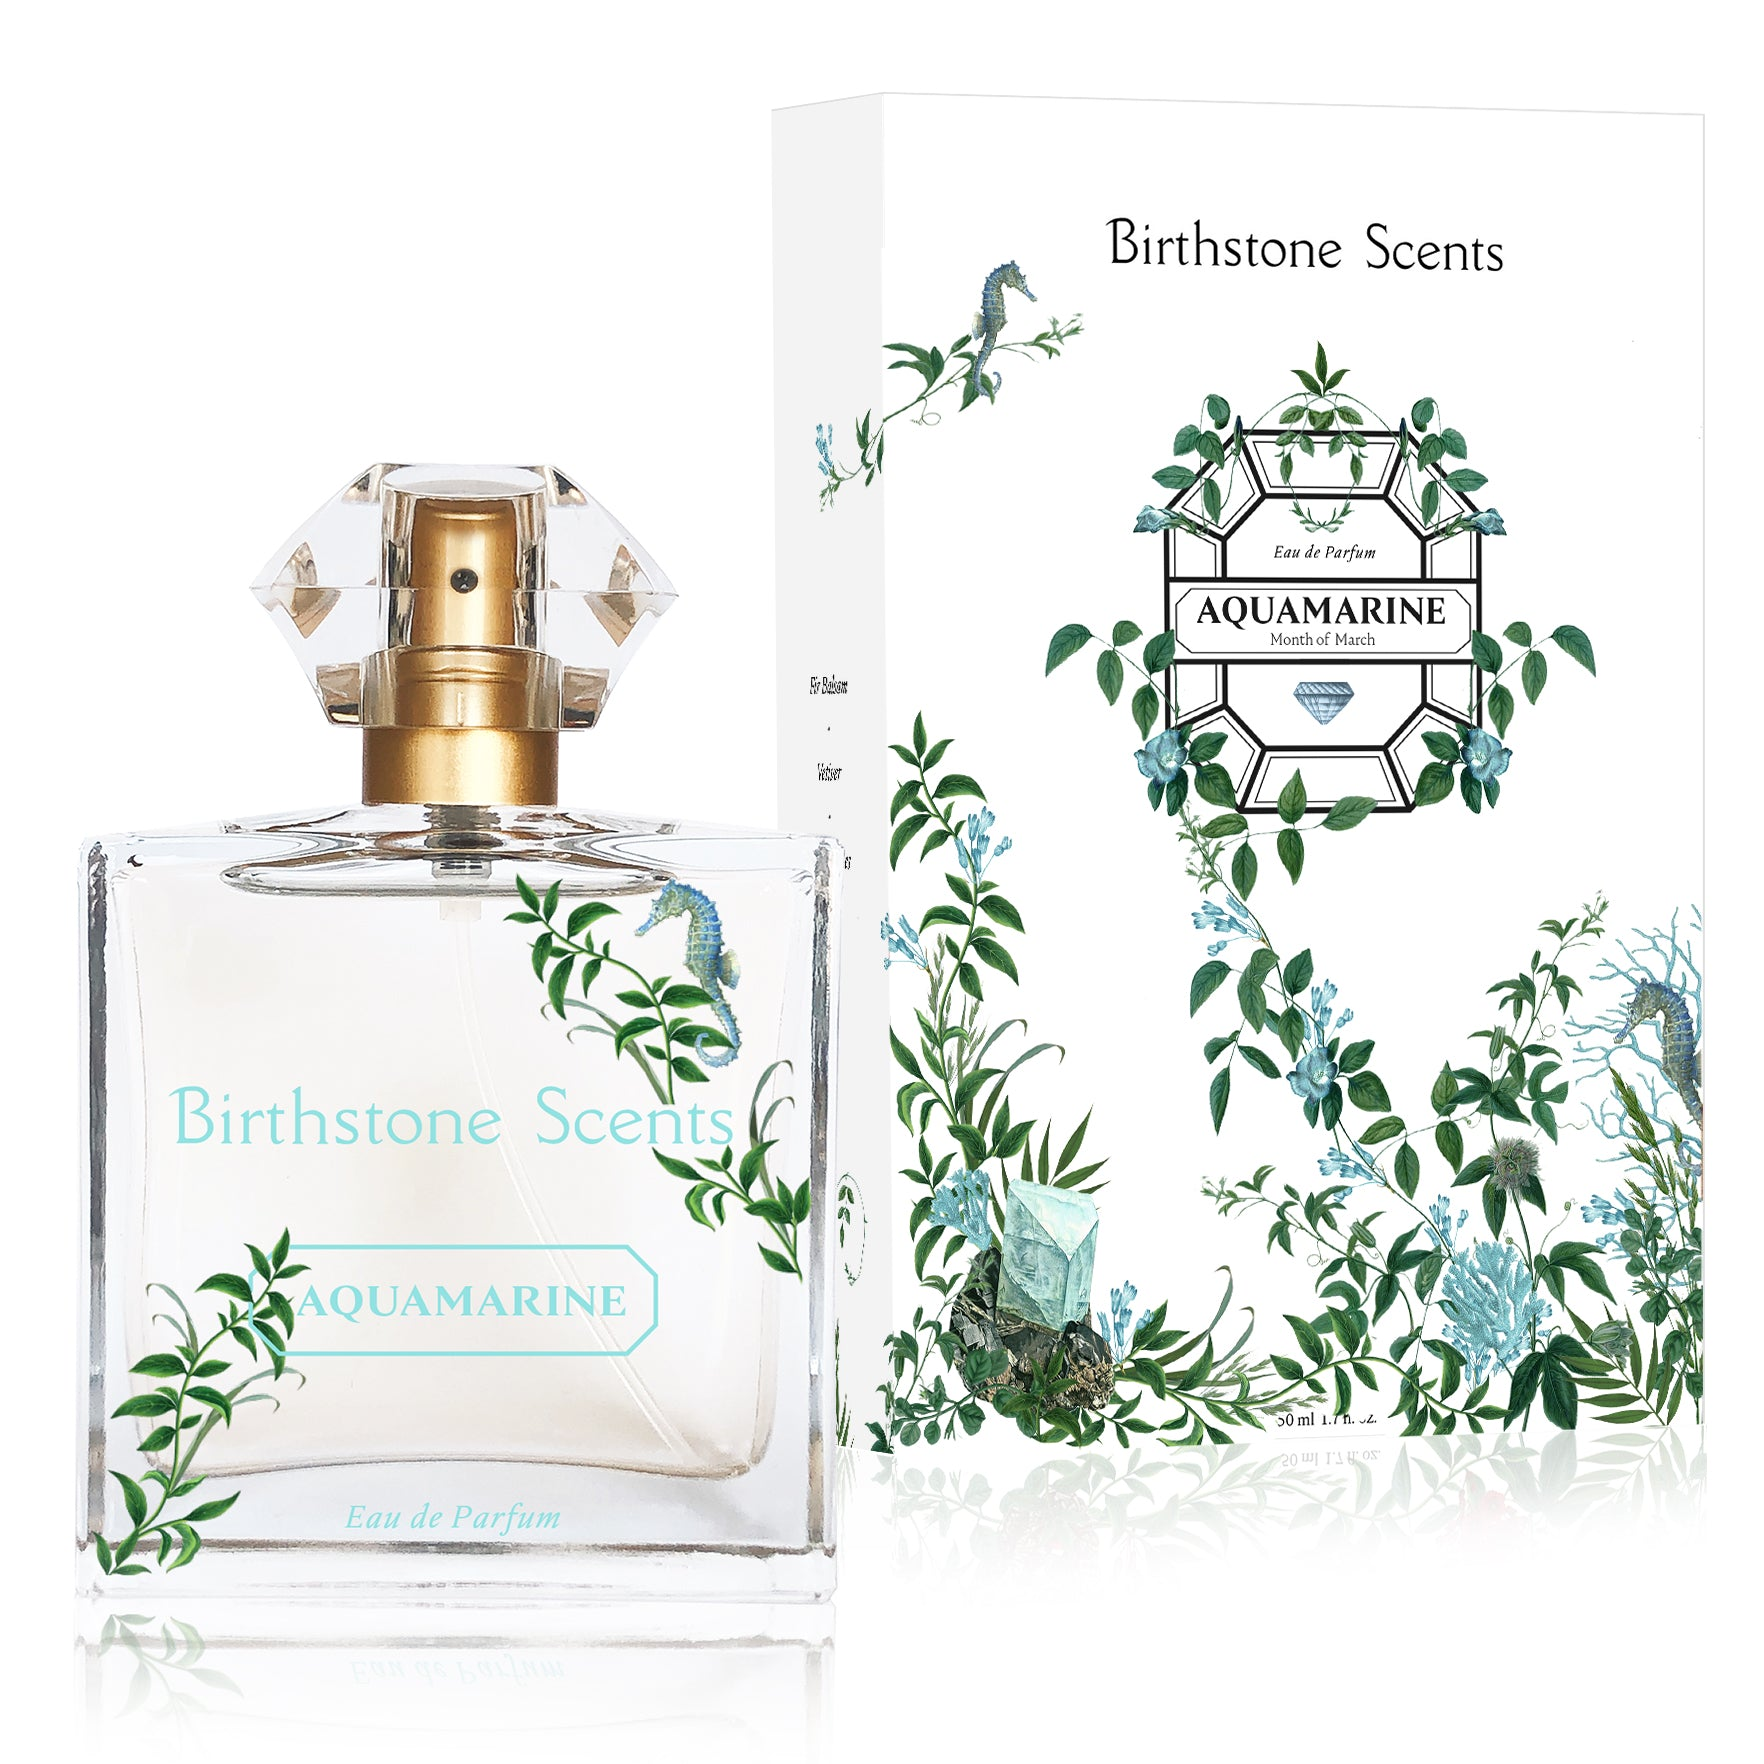 AQUAMARINE PERFUME | March - Birthstone Scents